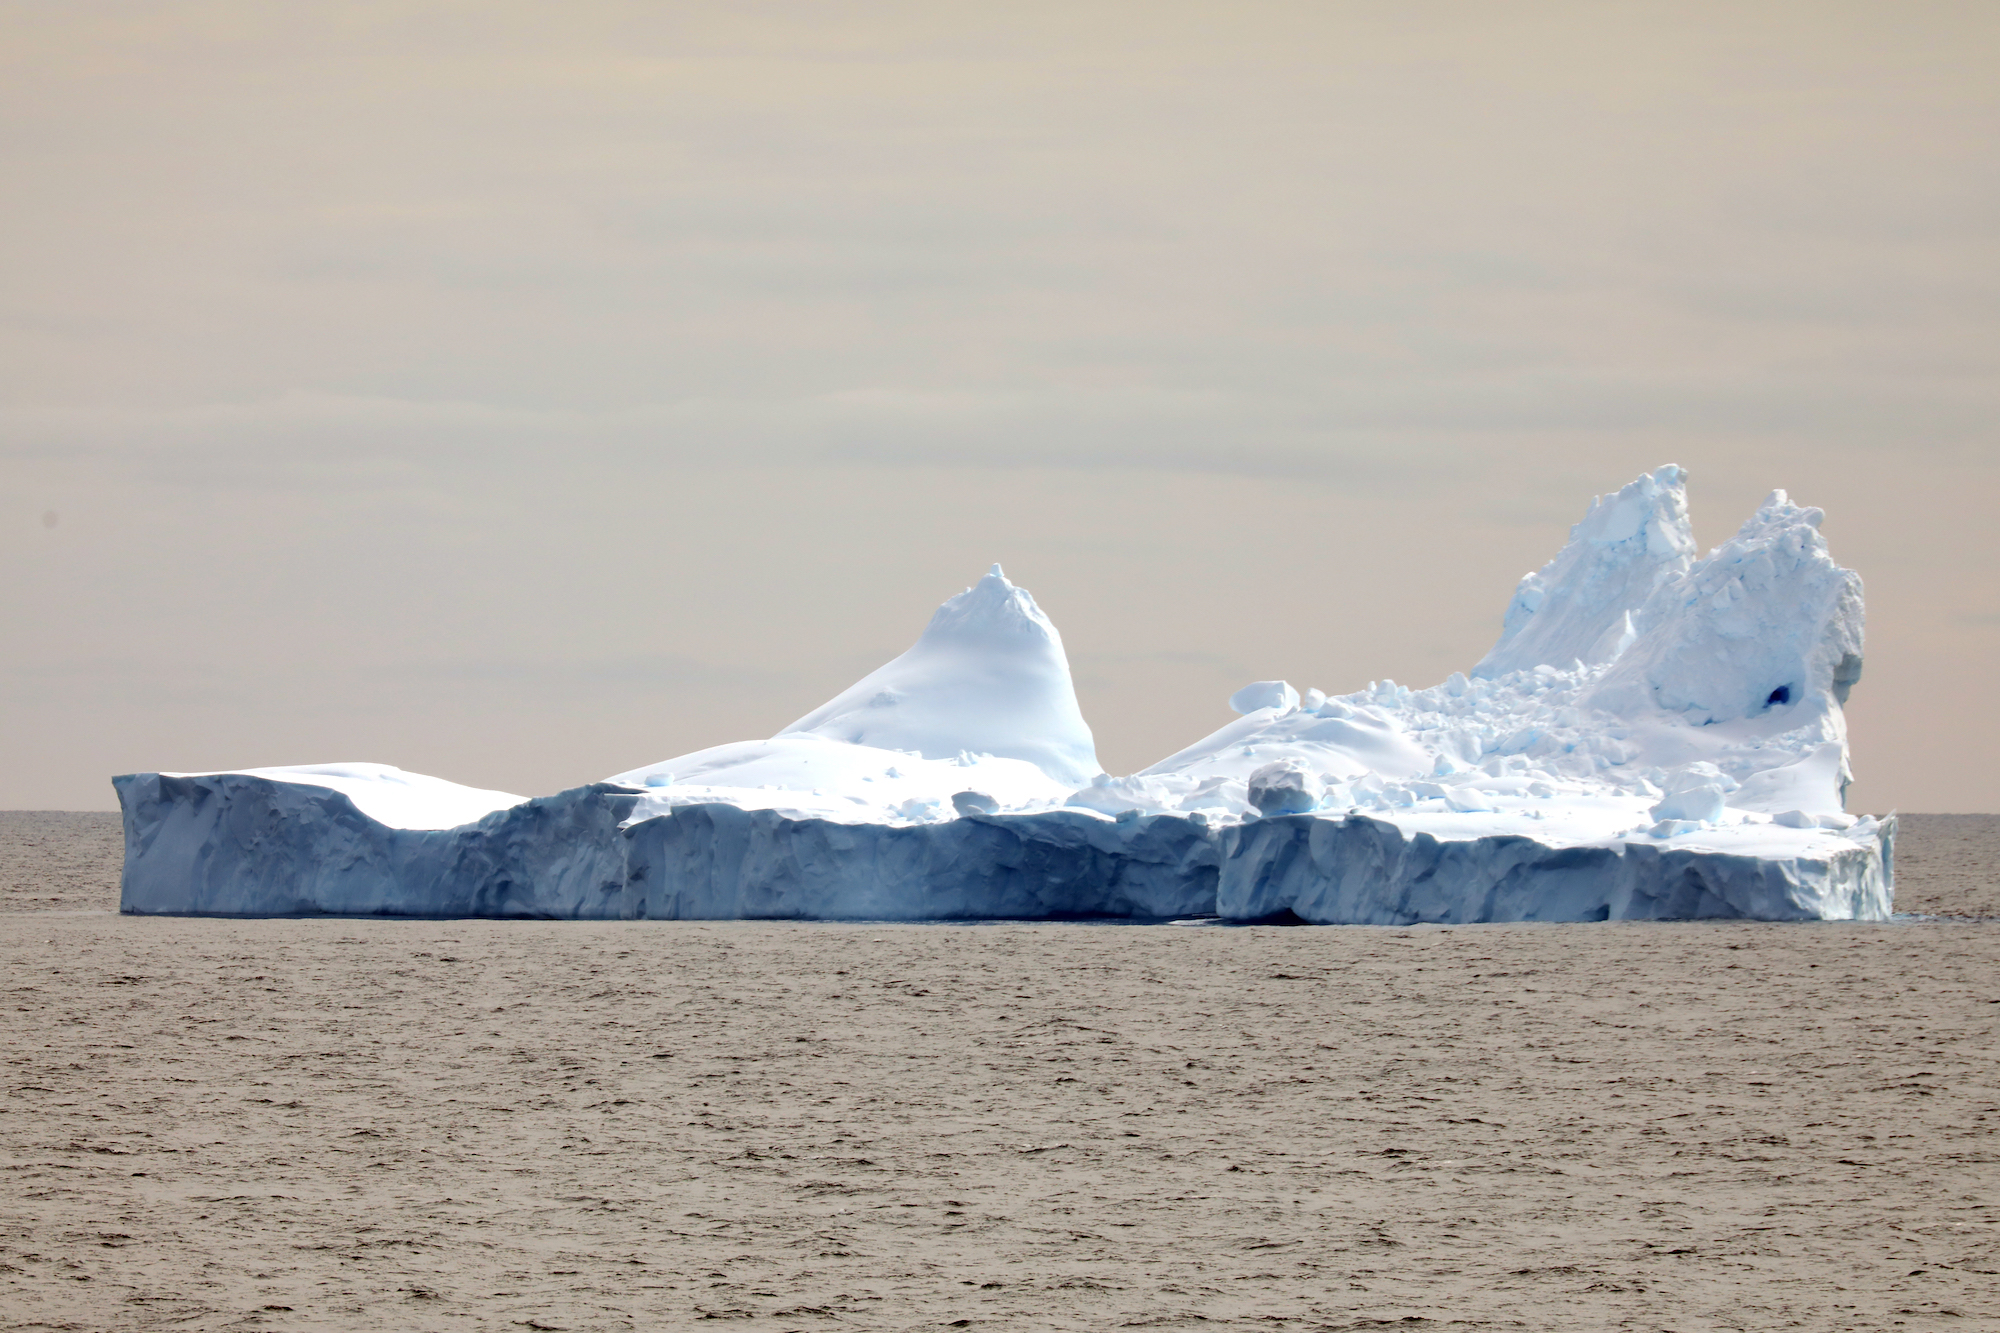 As icebergs age, they melt and crumble to produce amazing sculpture.